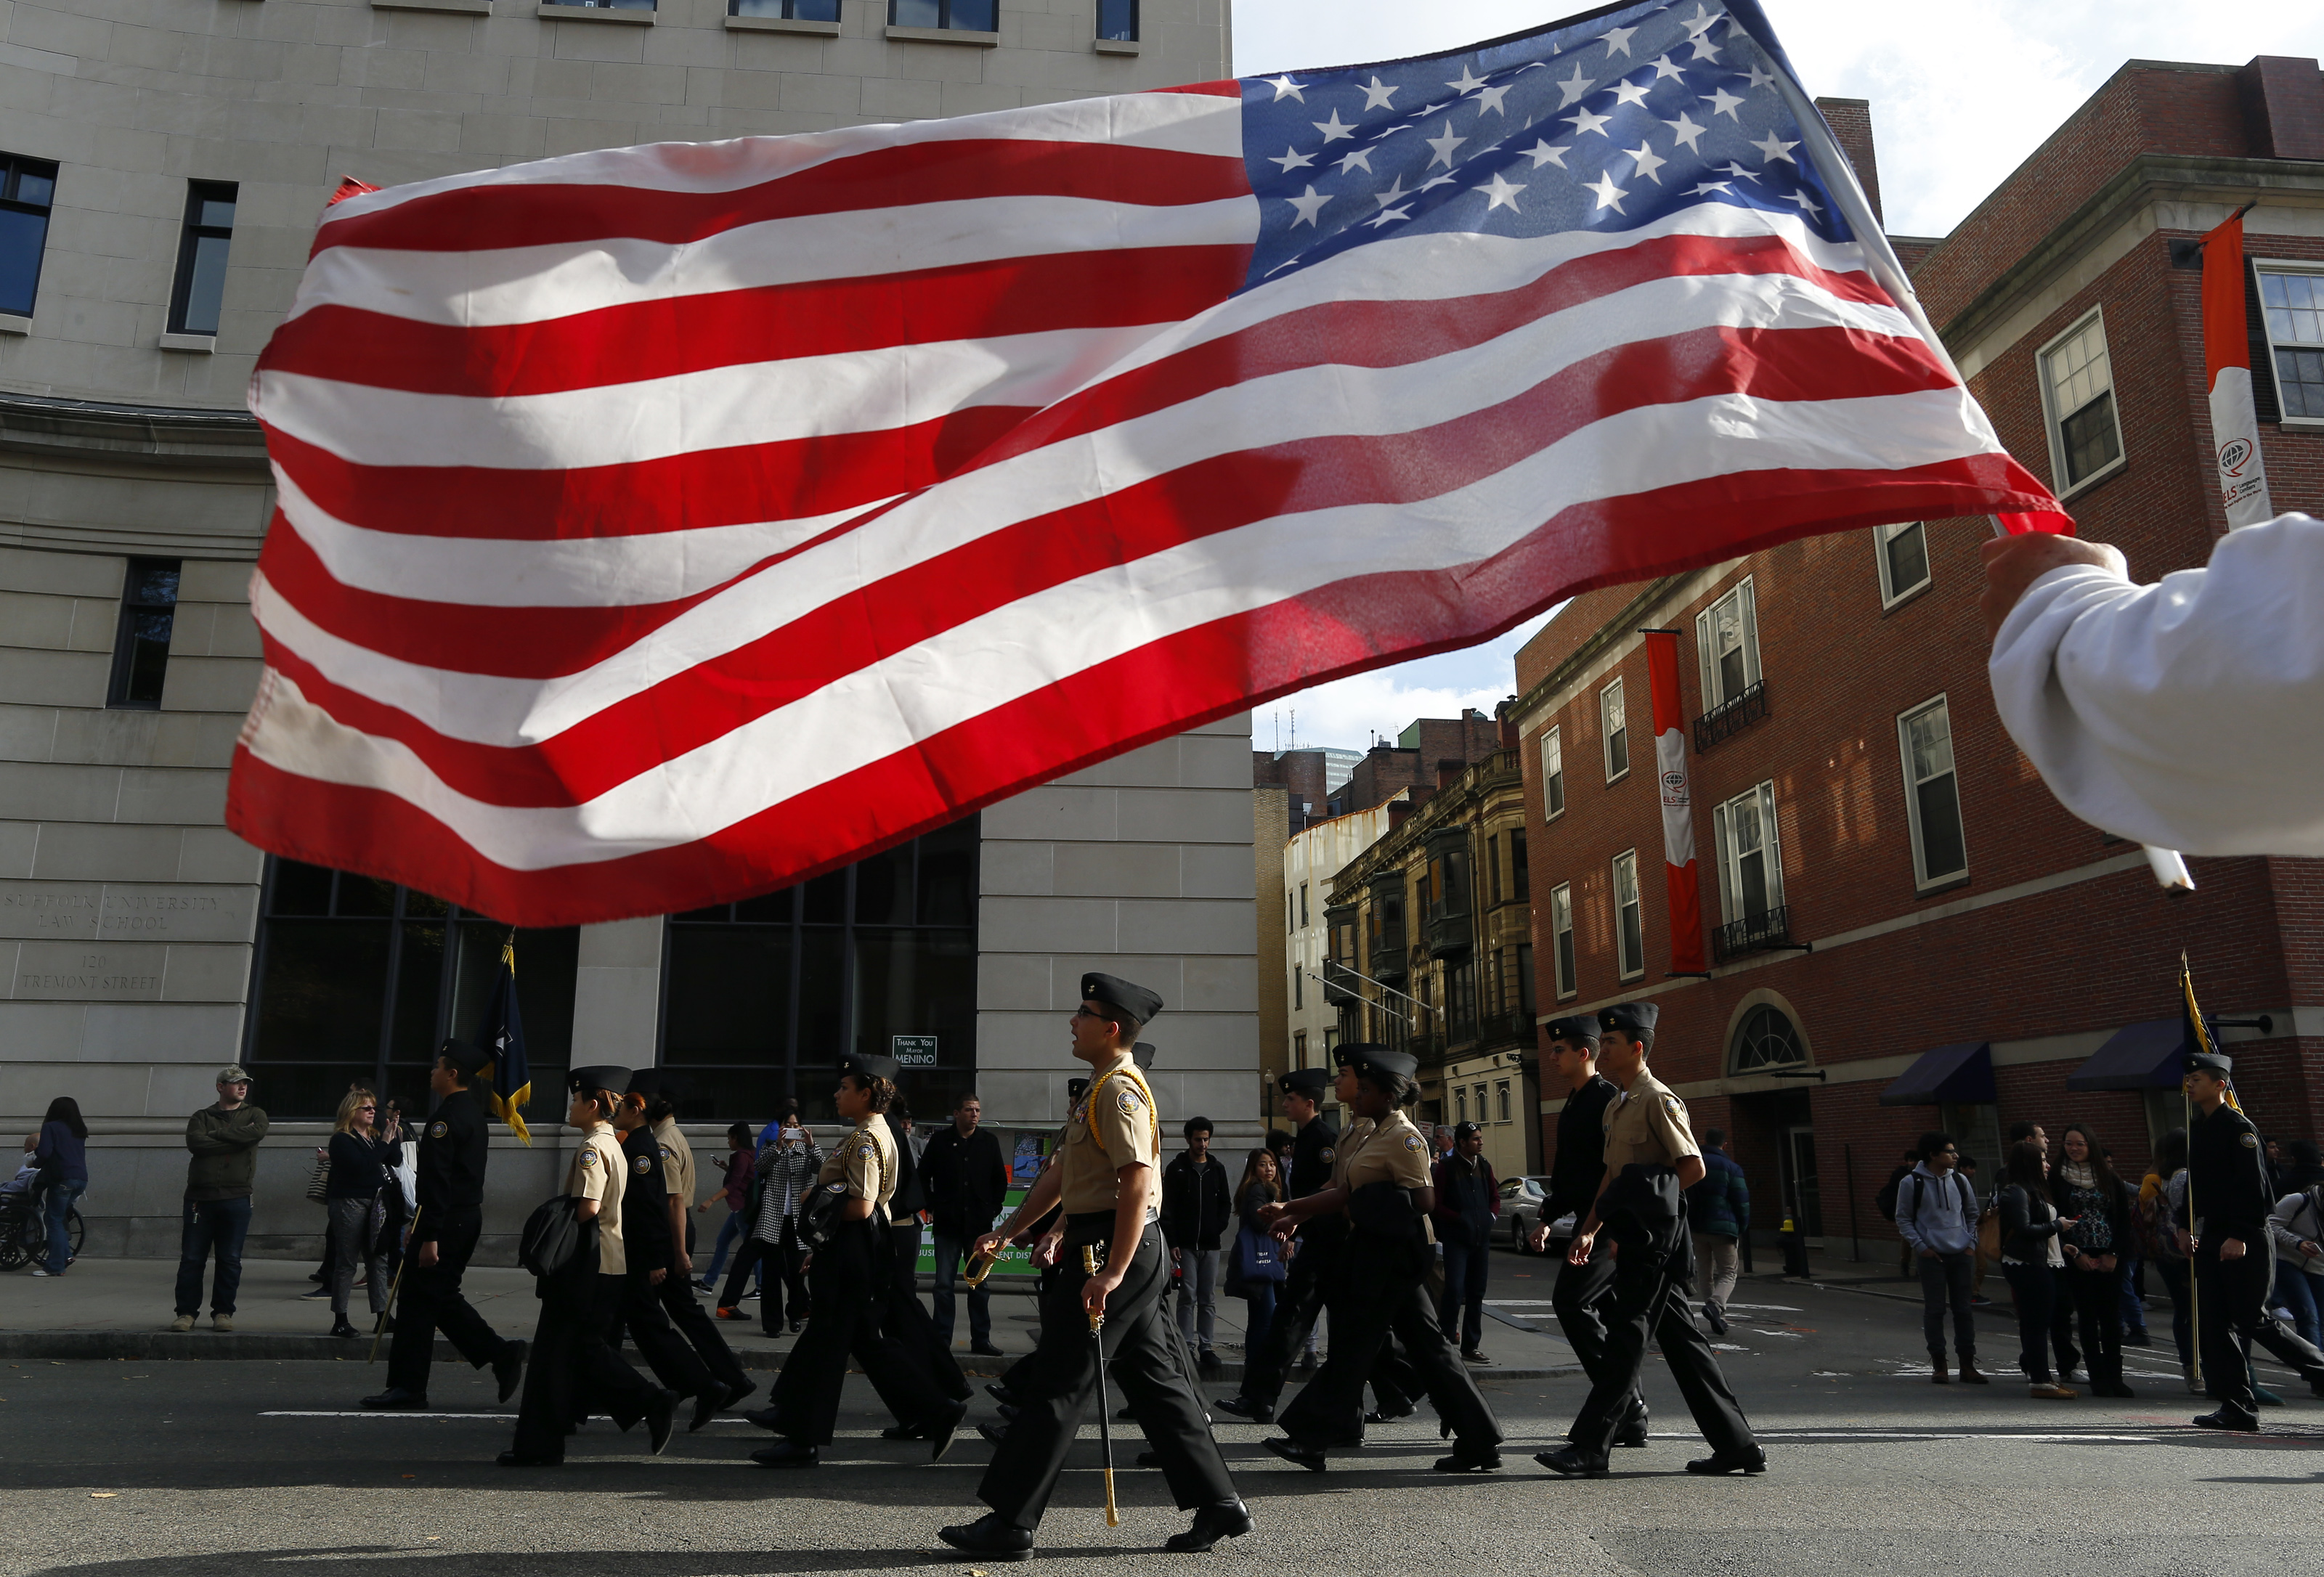 The Veterans Day Parade passes by in Boston on November 11, 2014.